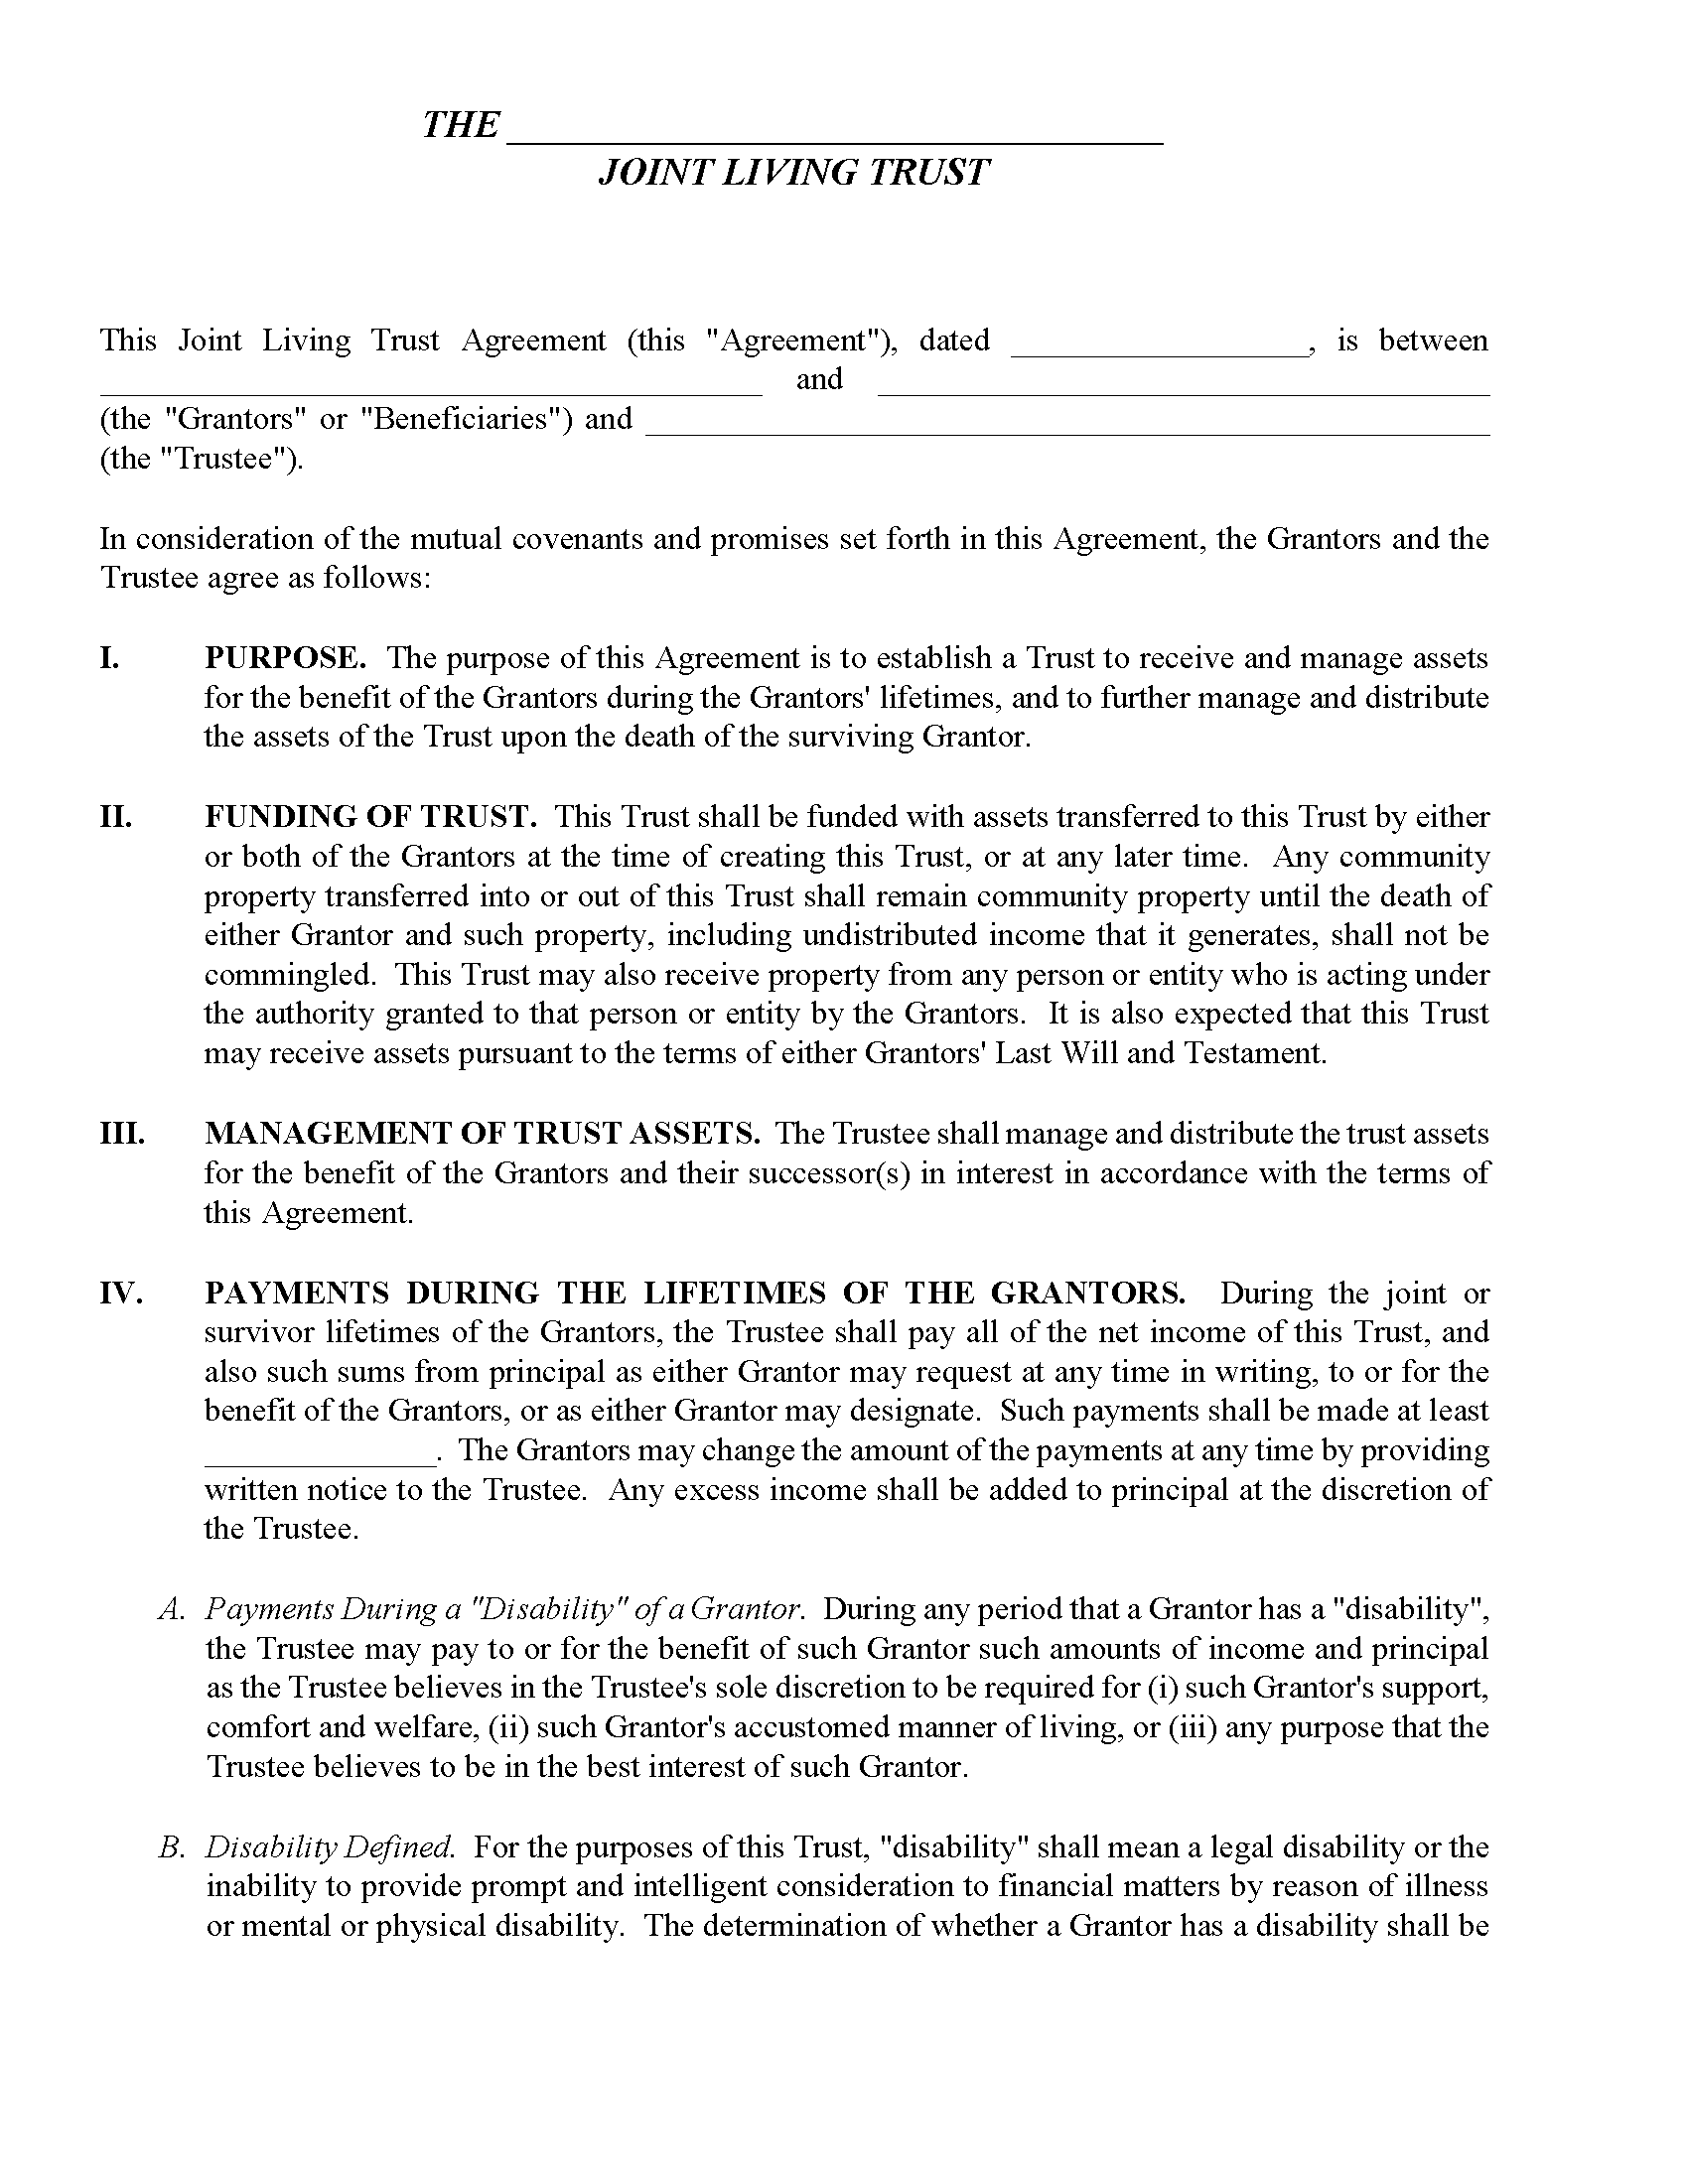 Michigan Joint Living Trust Form